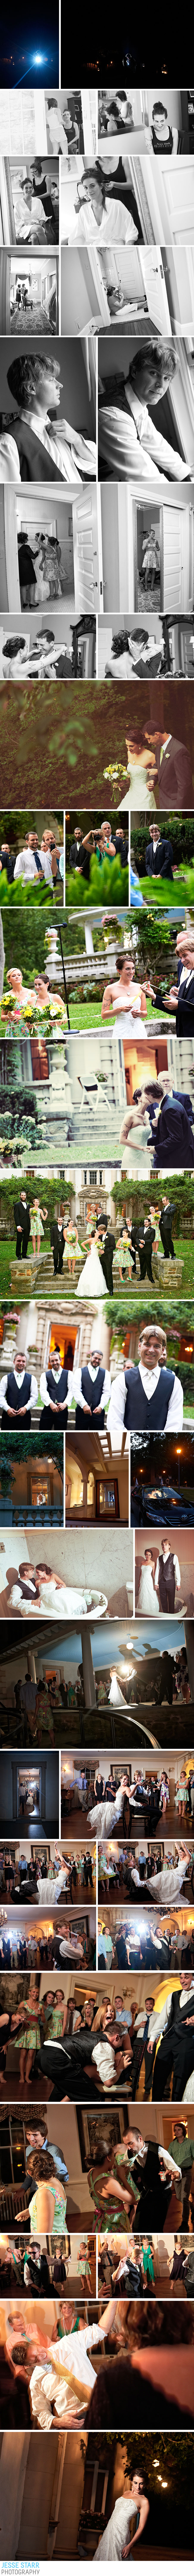 Wedding photography at the Liriodendron Mansion in Bel Air Maryland